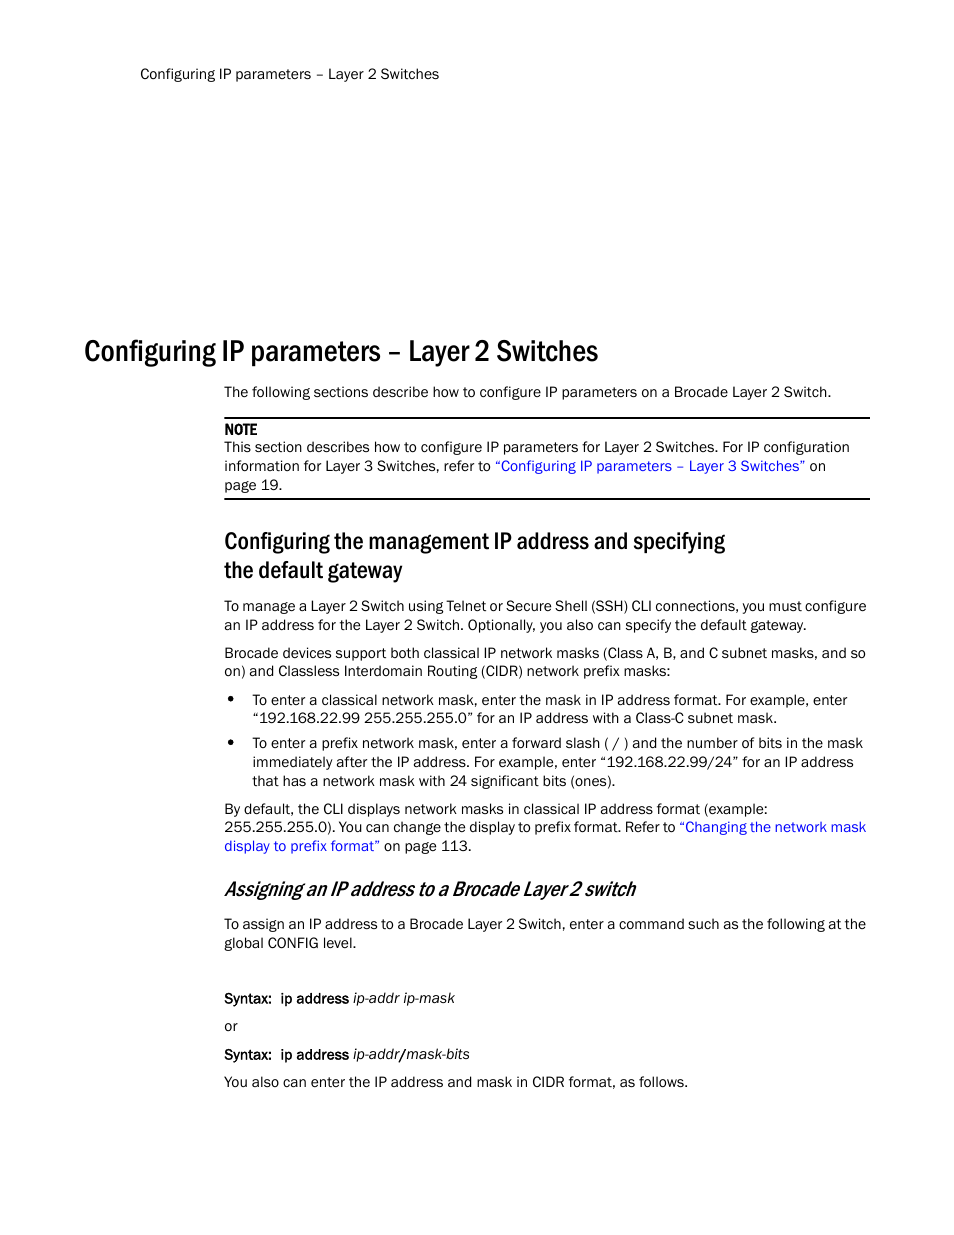 Configuring ip parameters – layer 2 switches, Configuring the